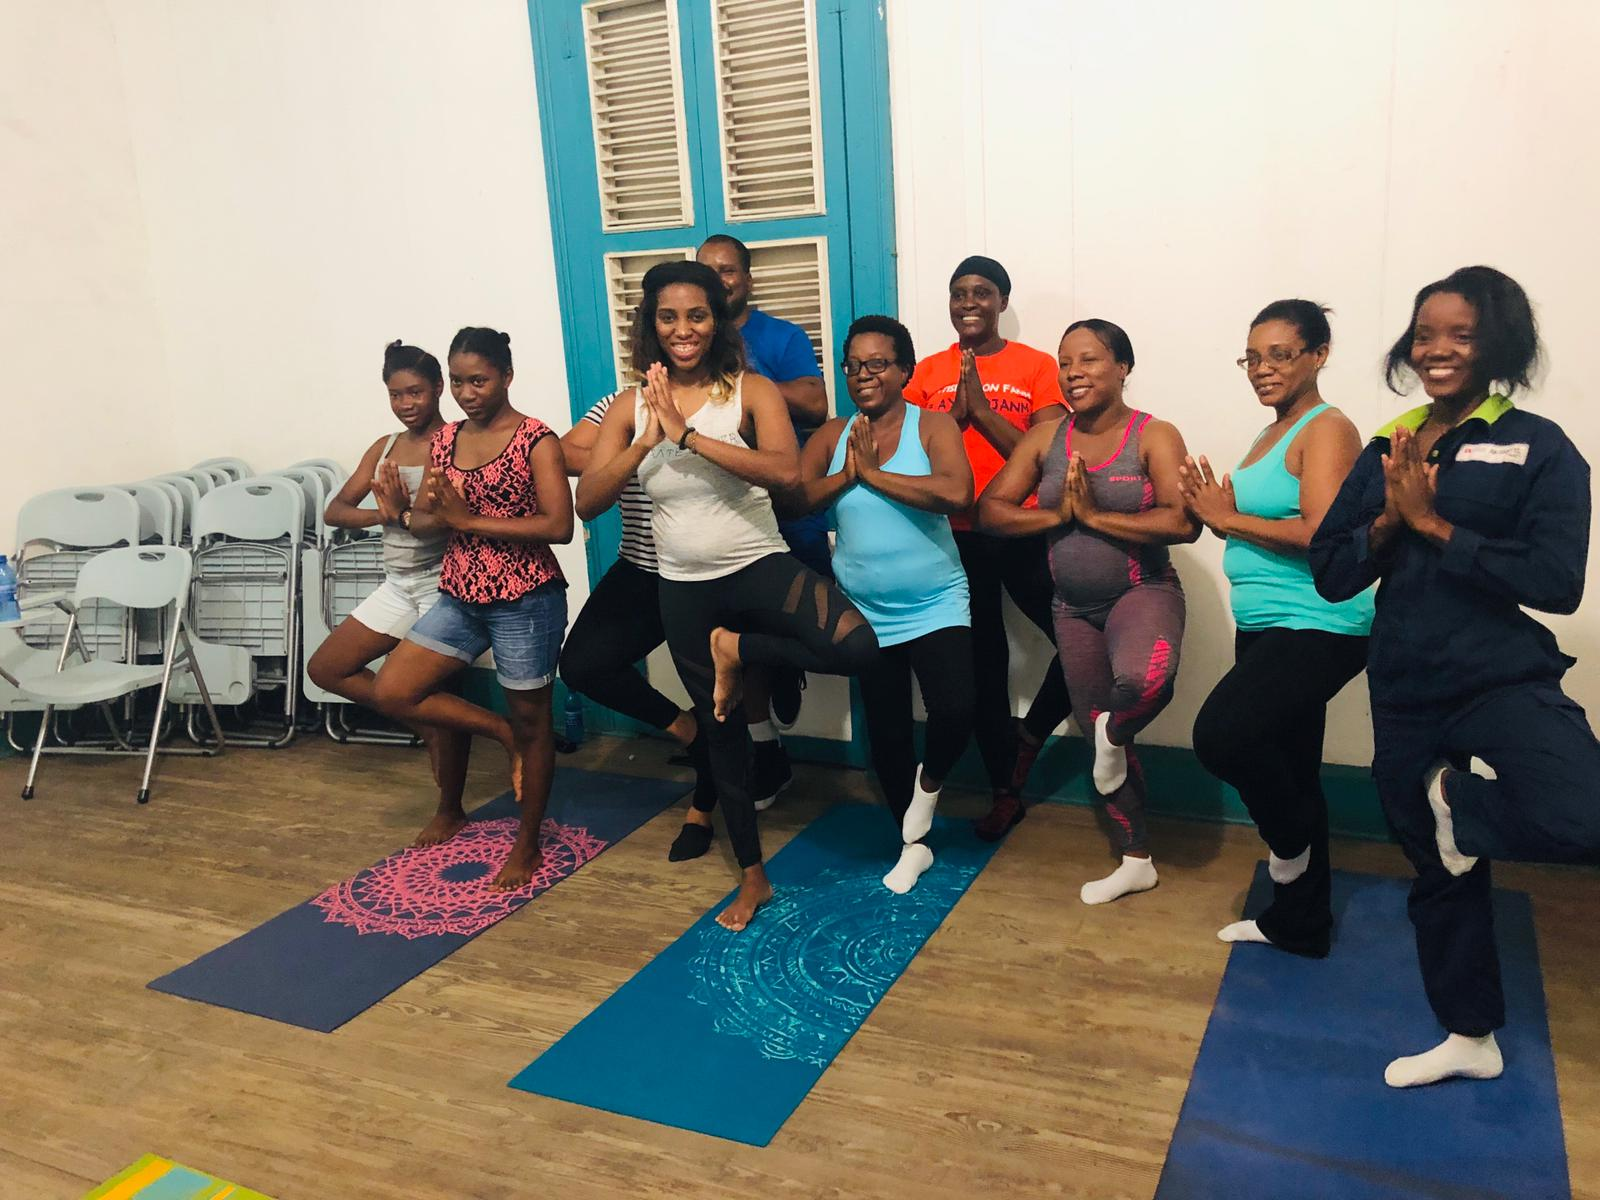 Free Yoga Class led by Vibrate Higher foundation In Cap Haitian, Haiti